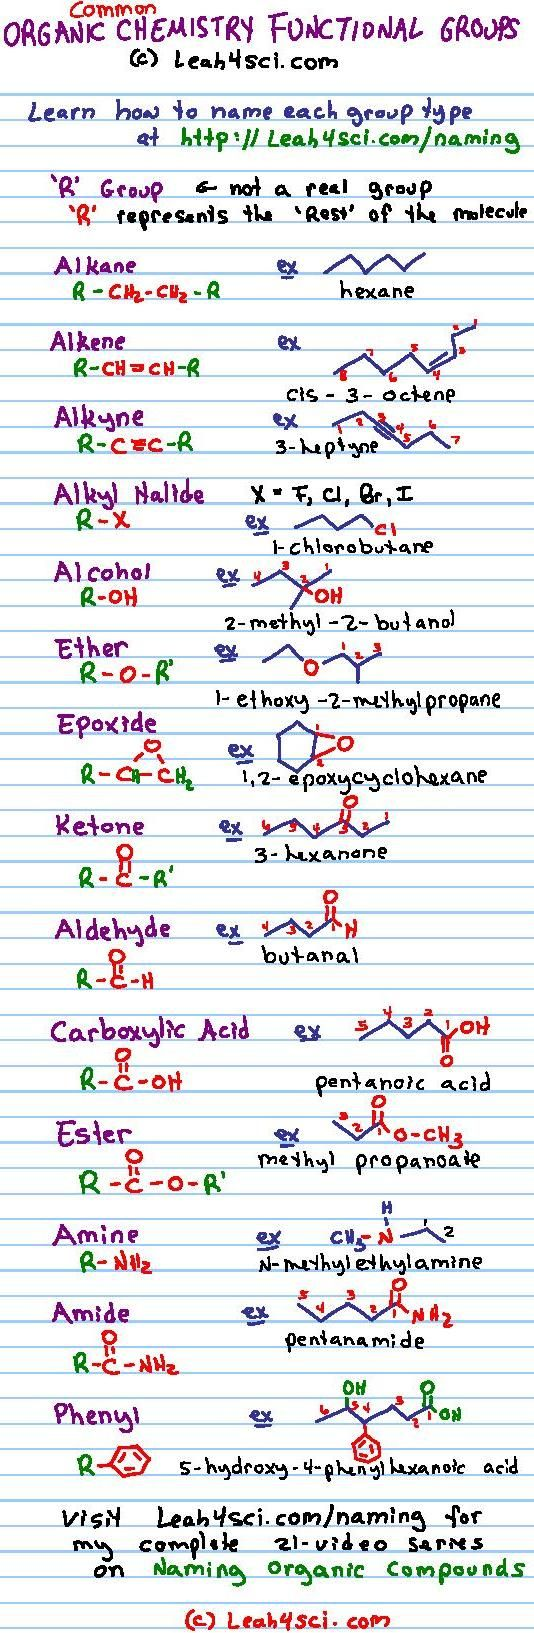 Organic Chemistry Functional Groups Cheat Sheet - print this guide